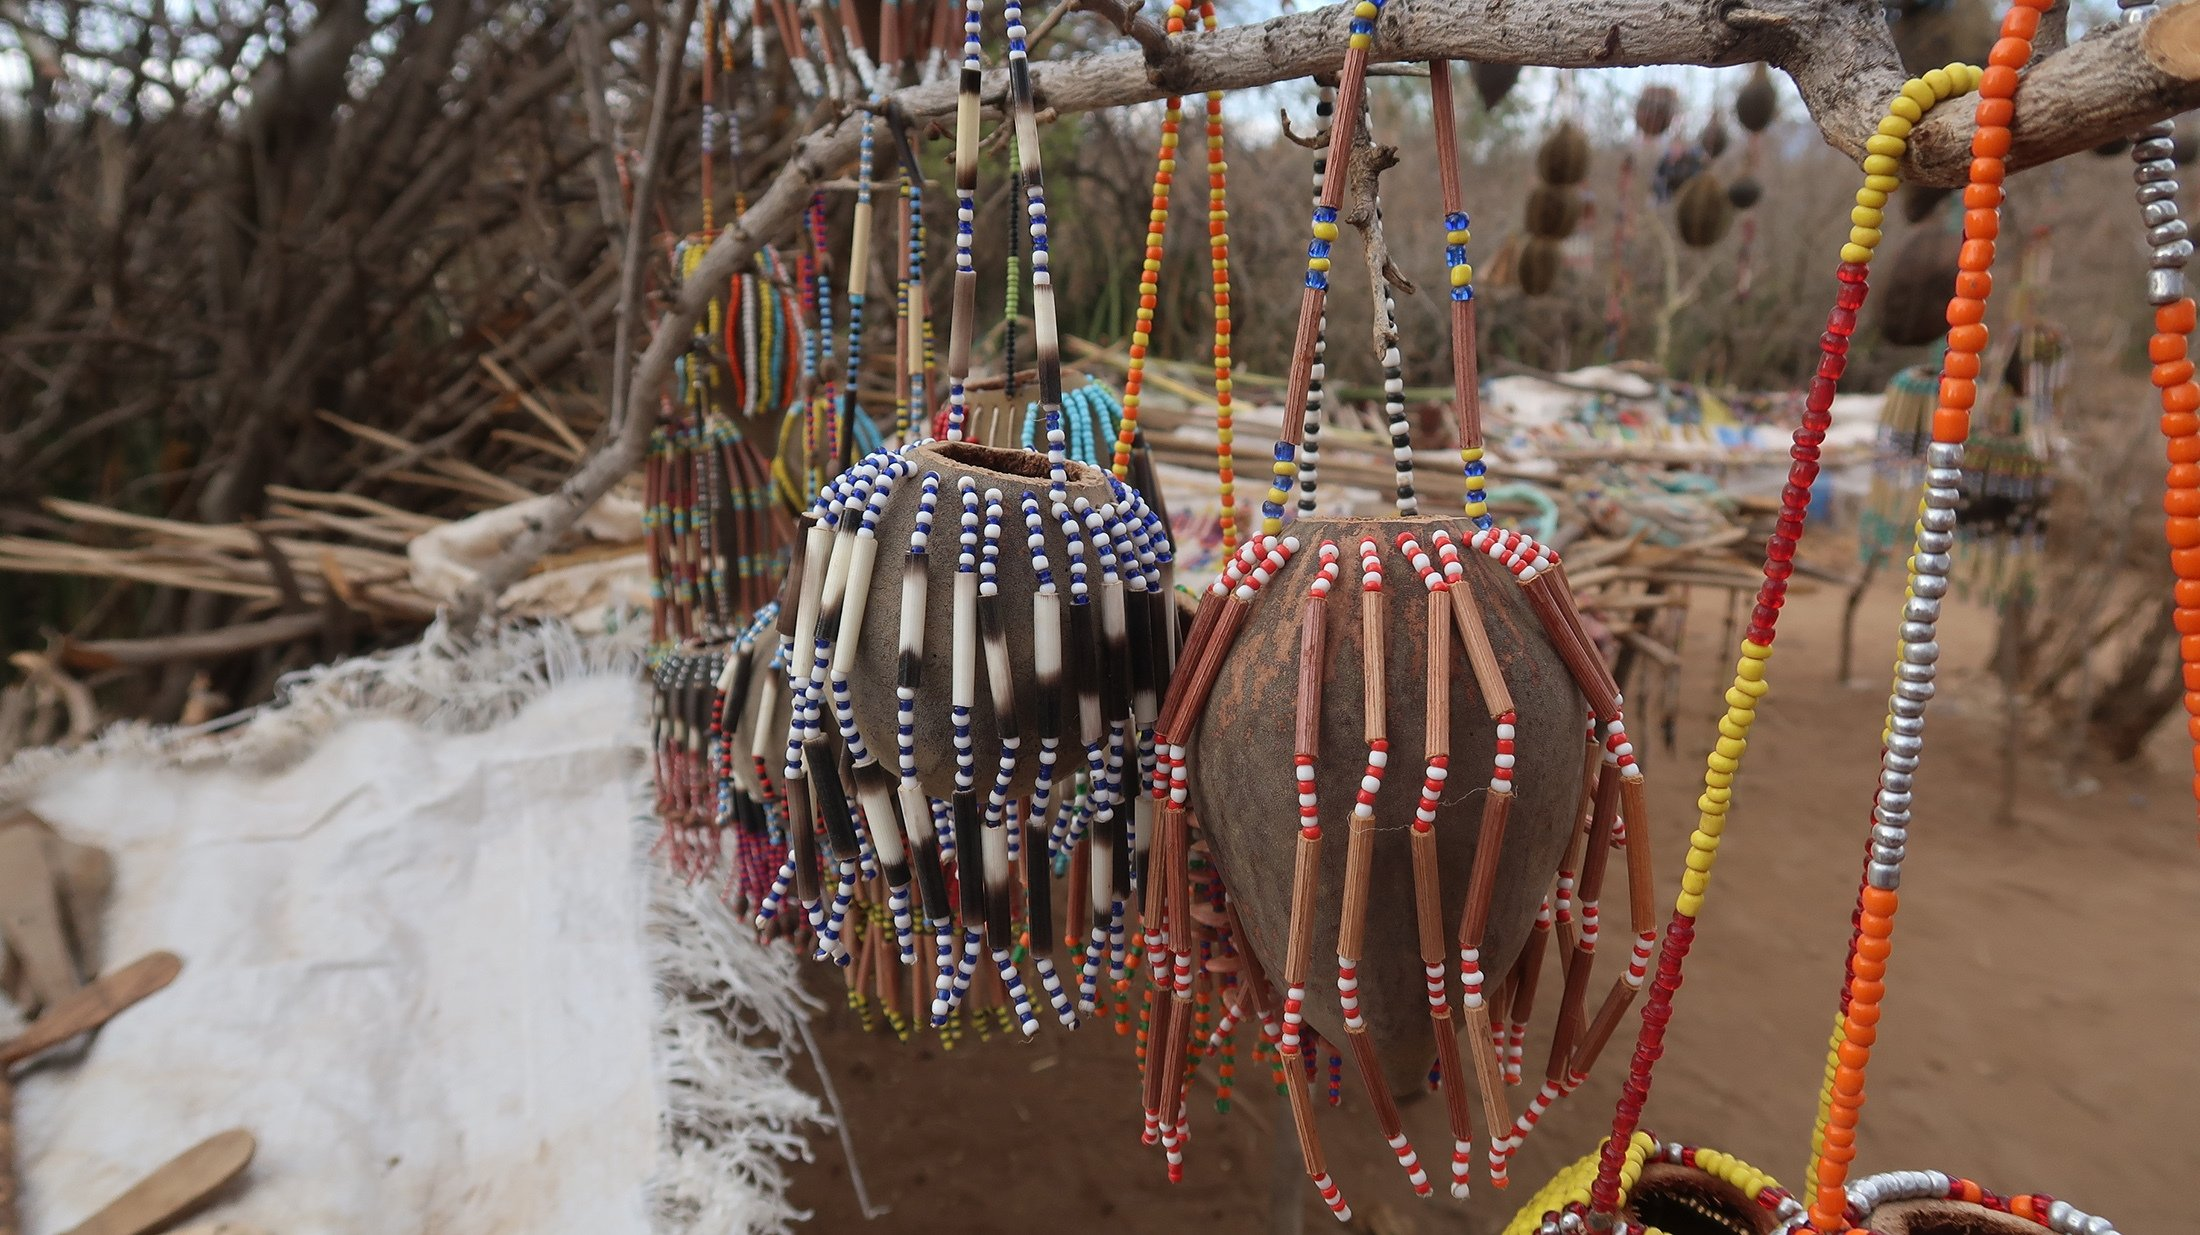 Souvenirs made by the Hadza people hang from a bush in Tanzania. (Shutterstock Photo)